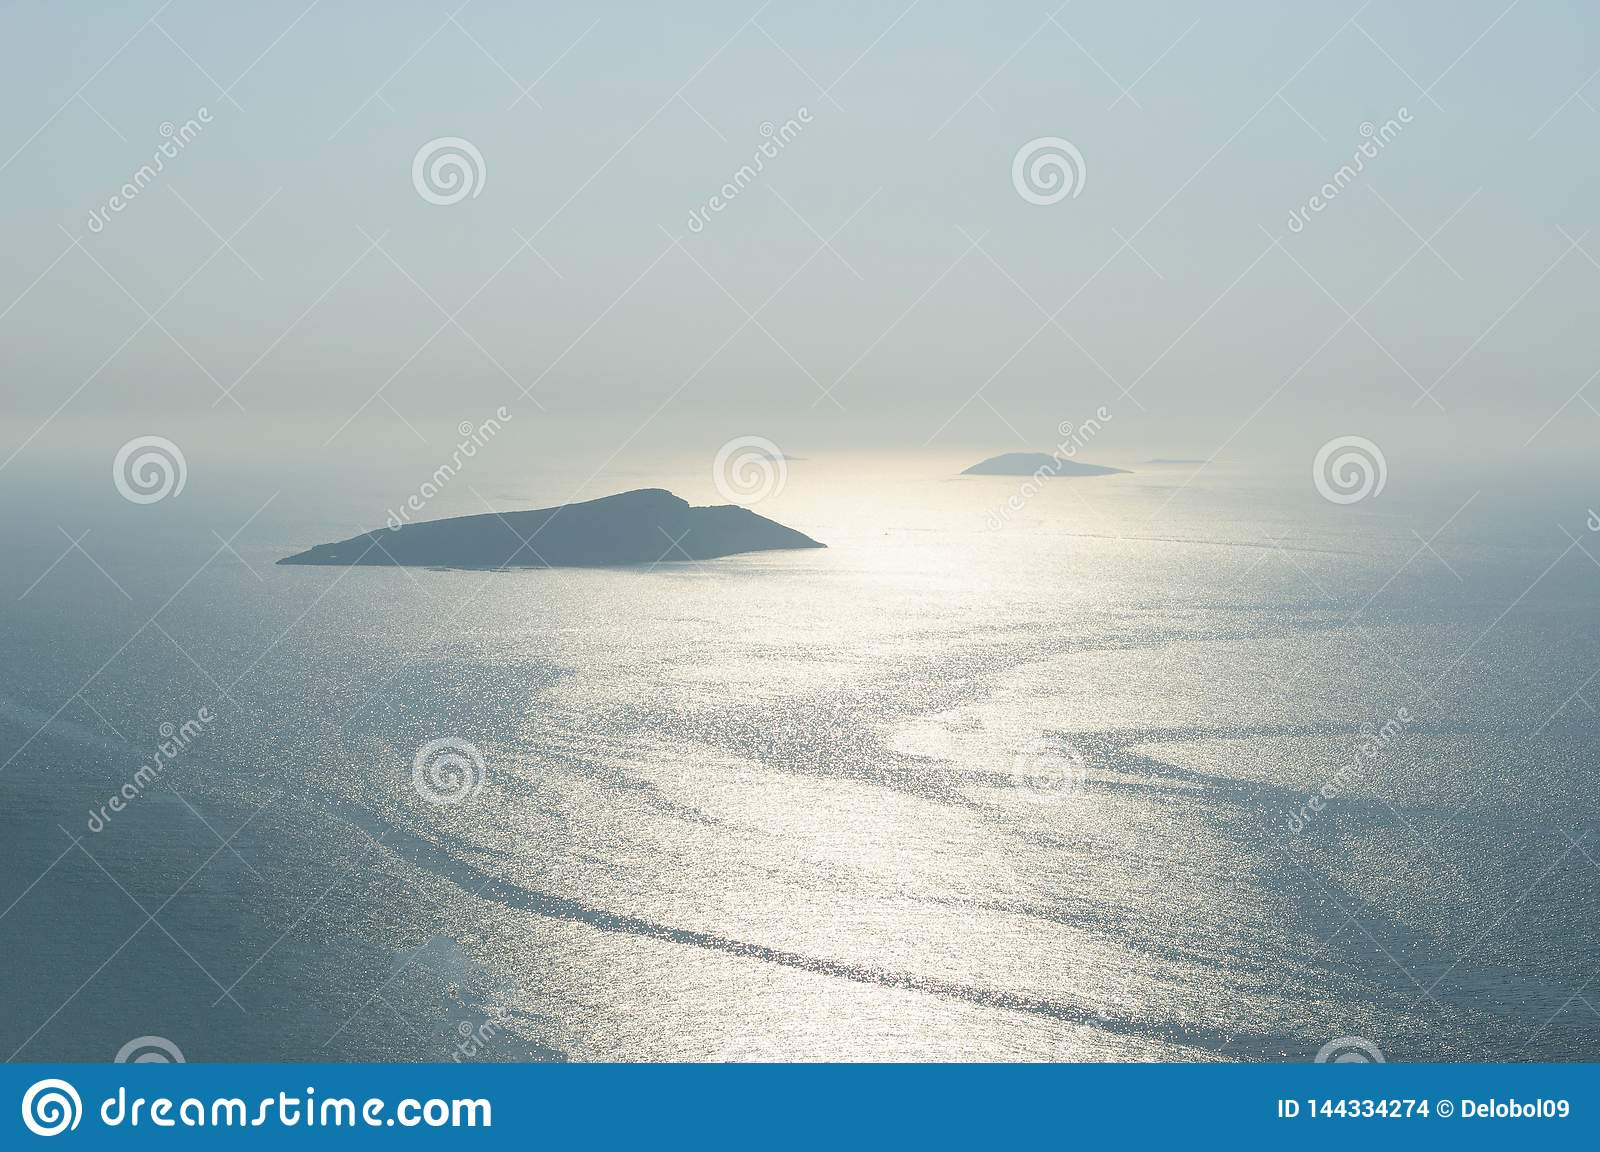 Silhouettes of Islands in the Aegean sea, Rhodes, Greece